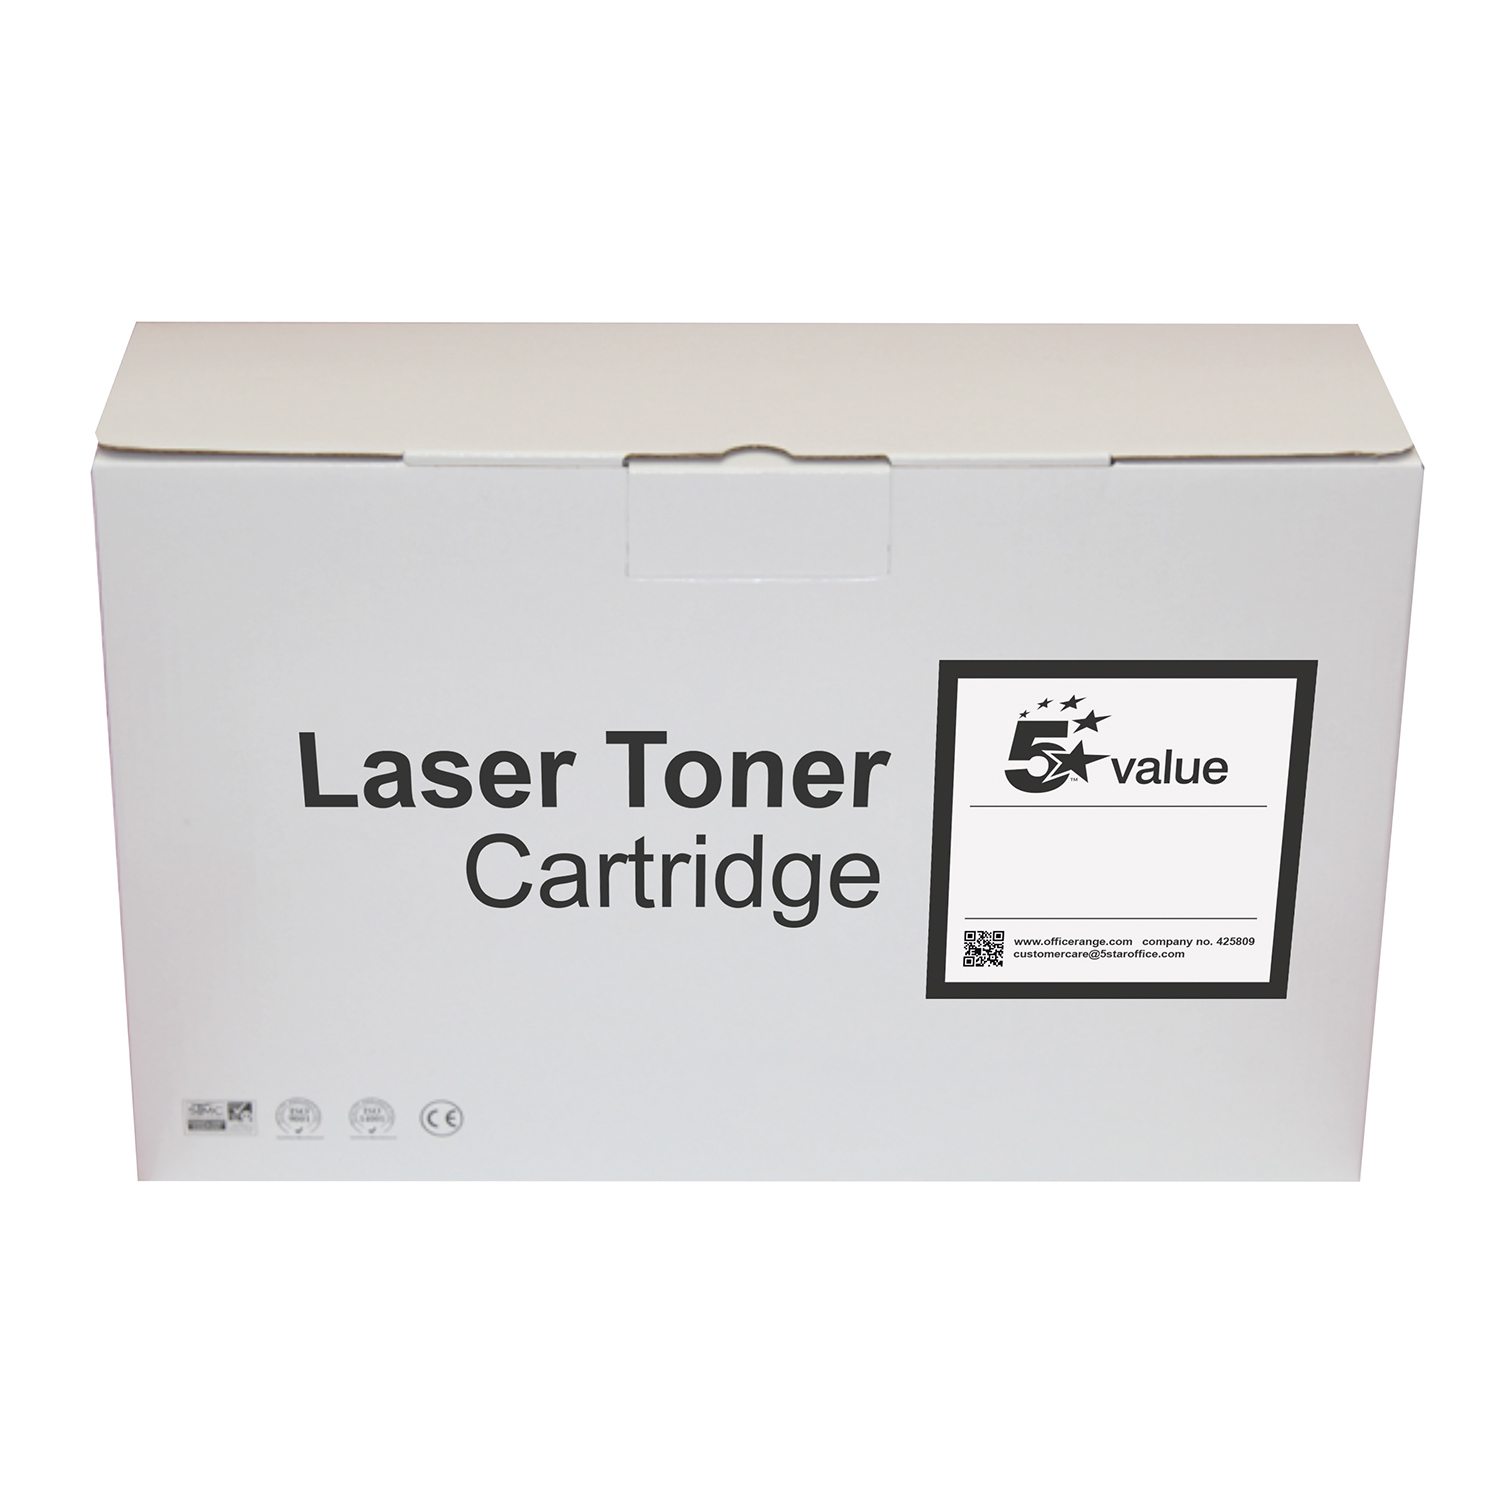 5 Star Value Remanufactured Laser Toner Cartridge Page Life 2200pp Black HP No. 80A CF280A Alternative